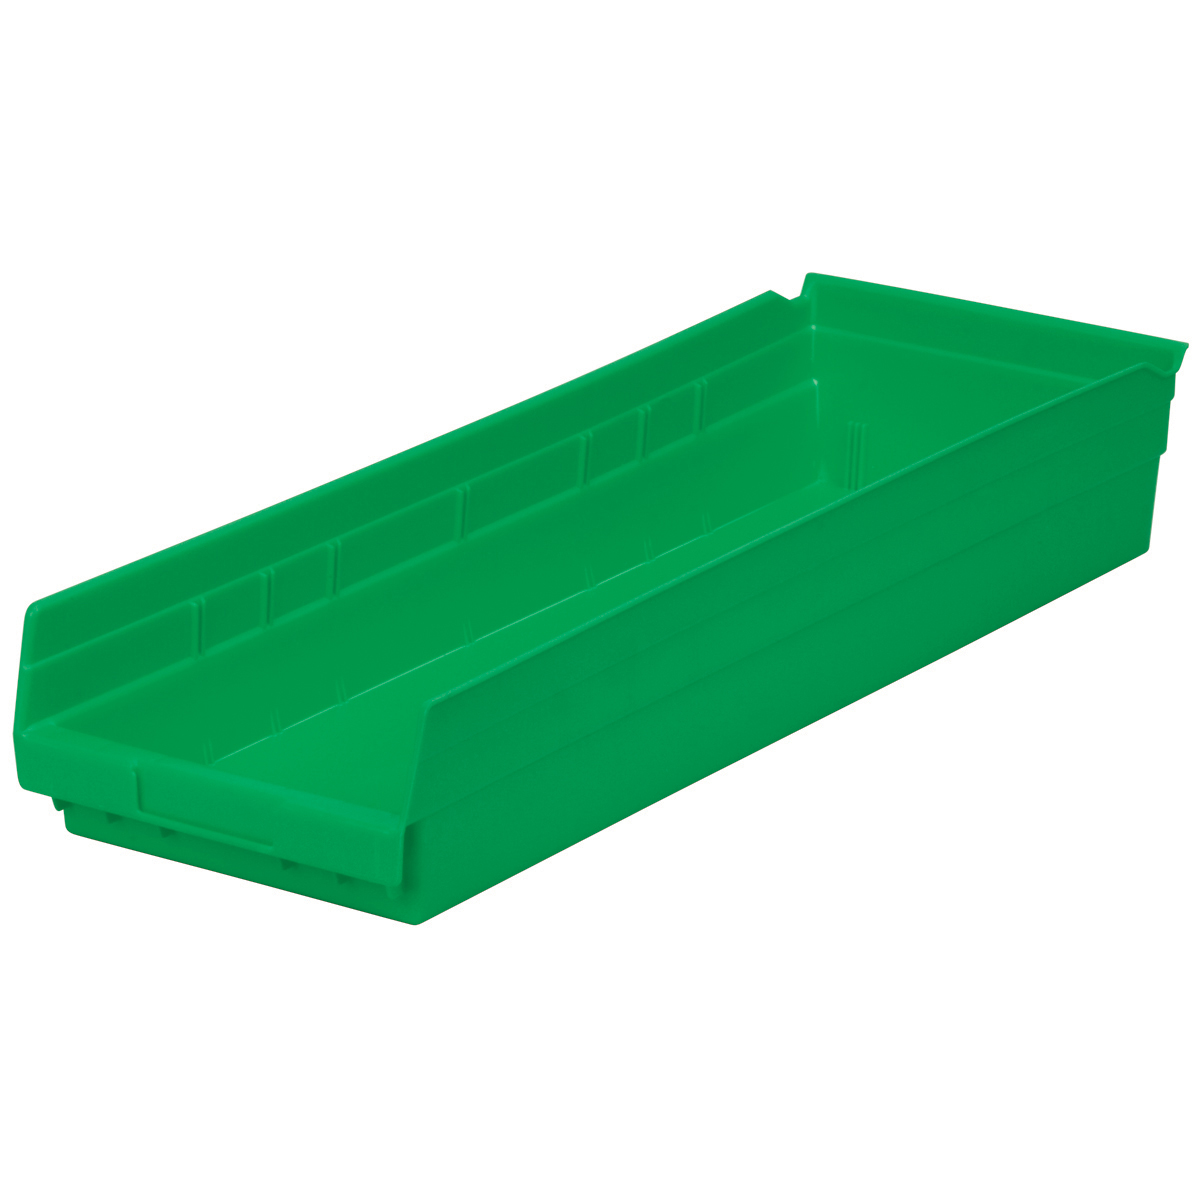 Shelf Bin 23-5/8 x 8-3/8 x 4, Green (30184GREEN).  This item sold in carton quantities of 6.